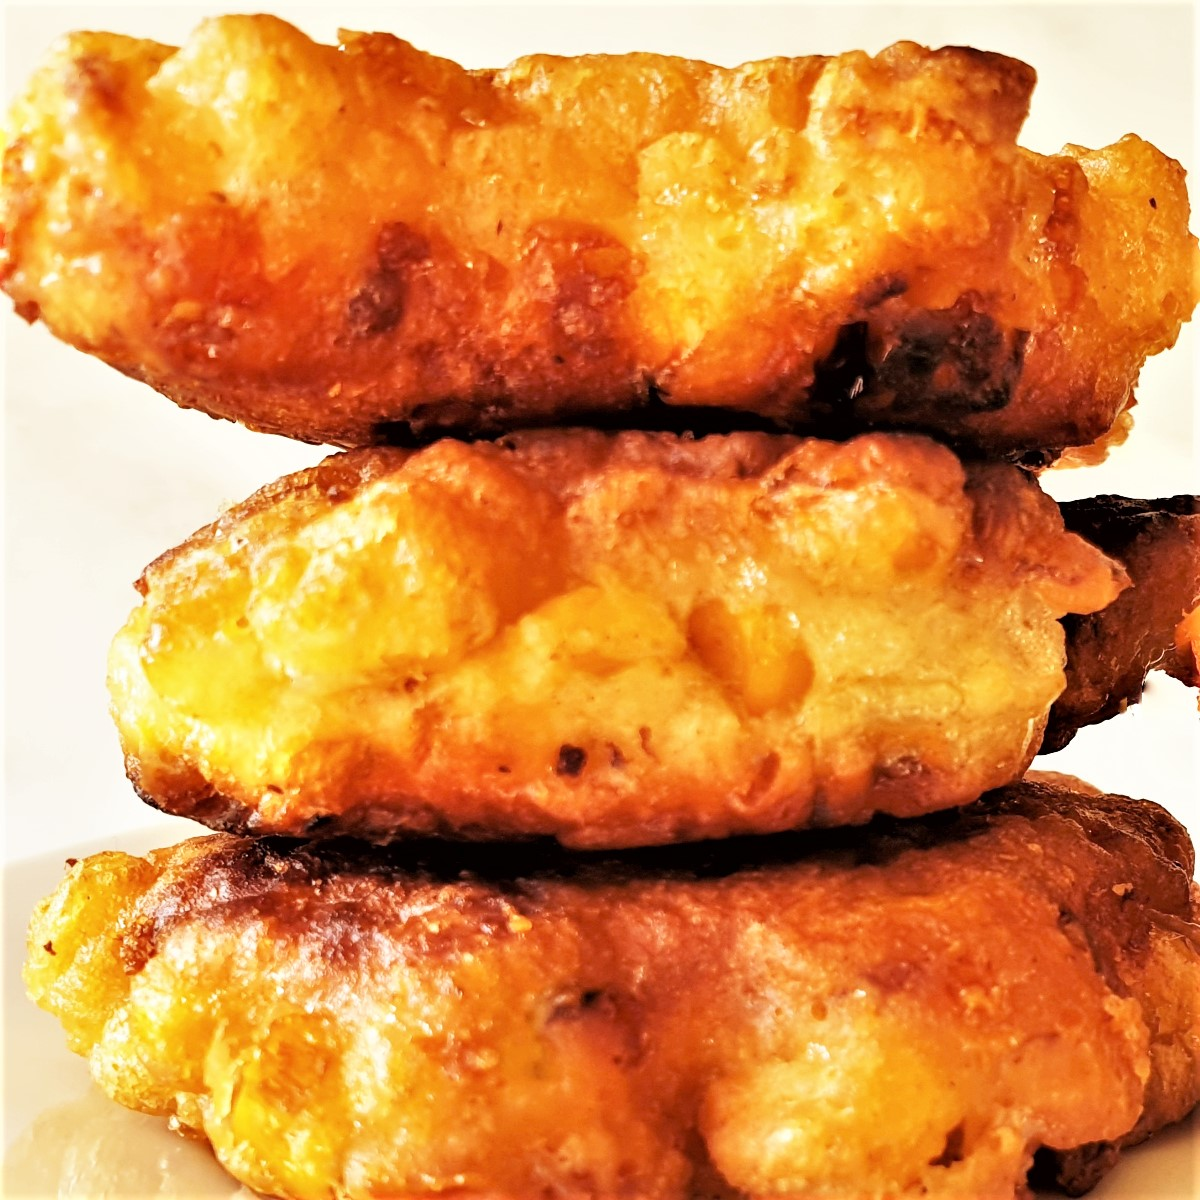 A pile of three fried crispy sweetcorn fritters.